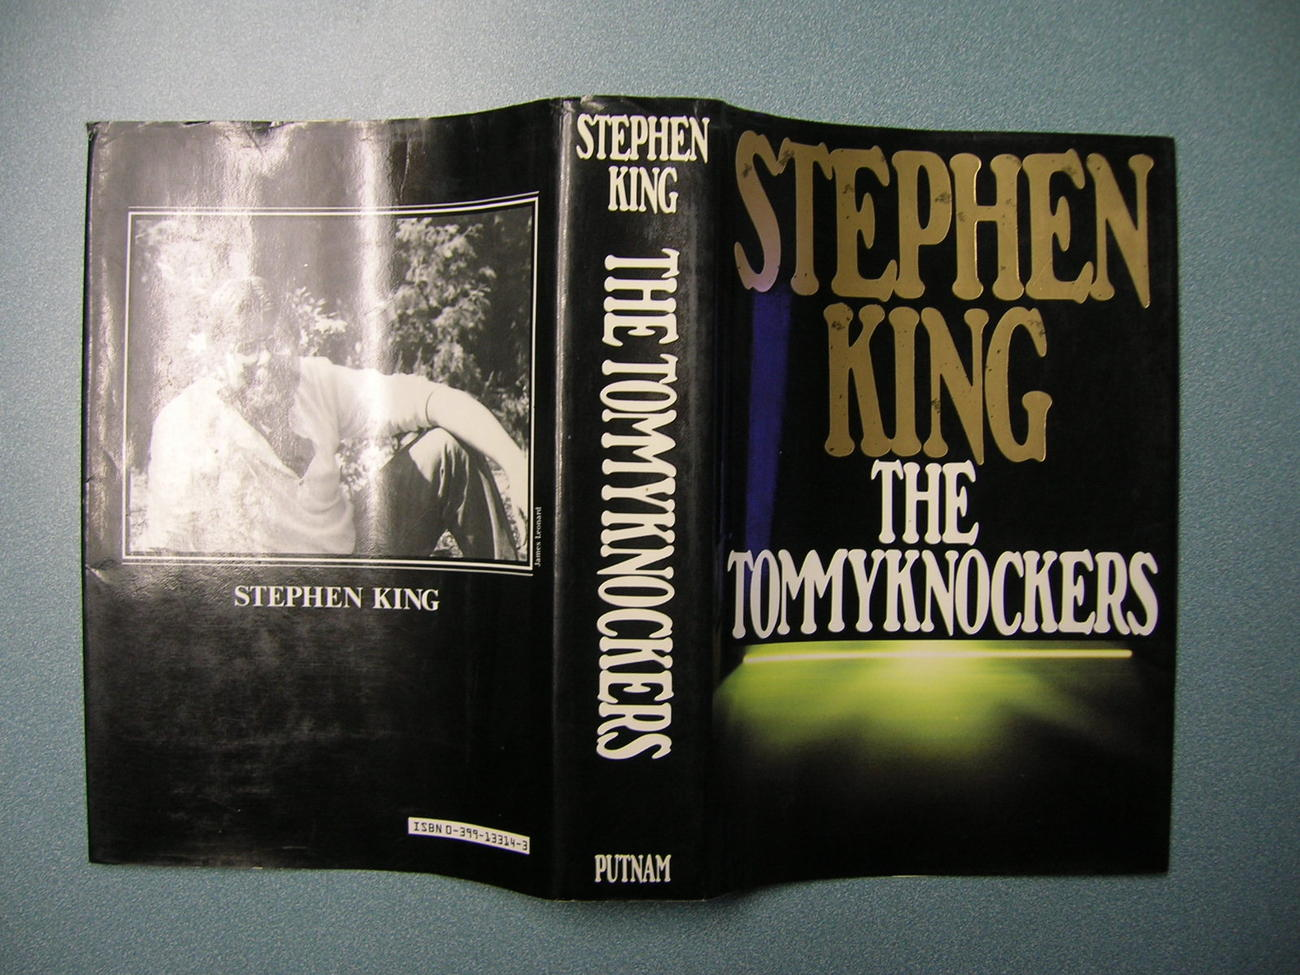 Stephen King - THE TOMMYKNOCKERS - First Edition